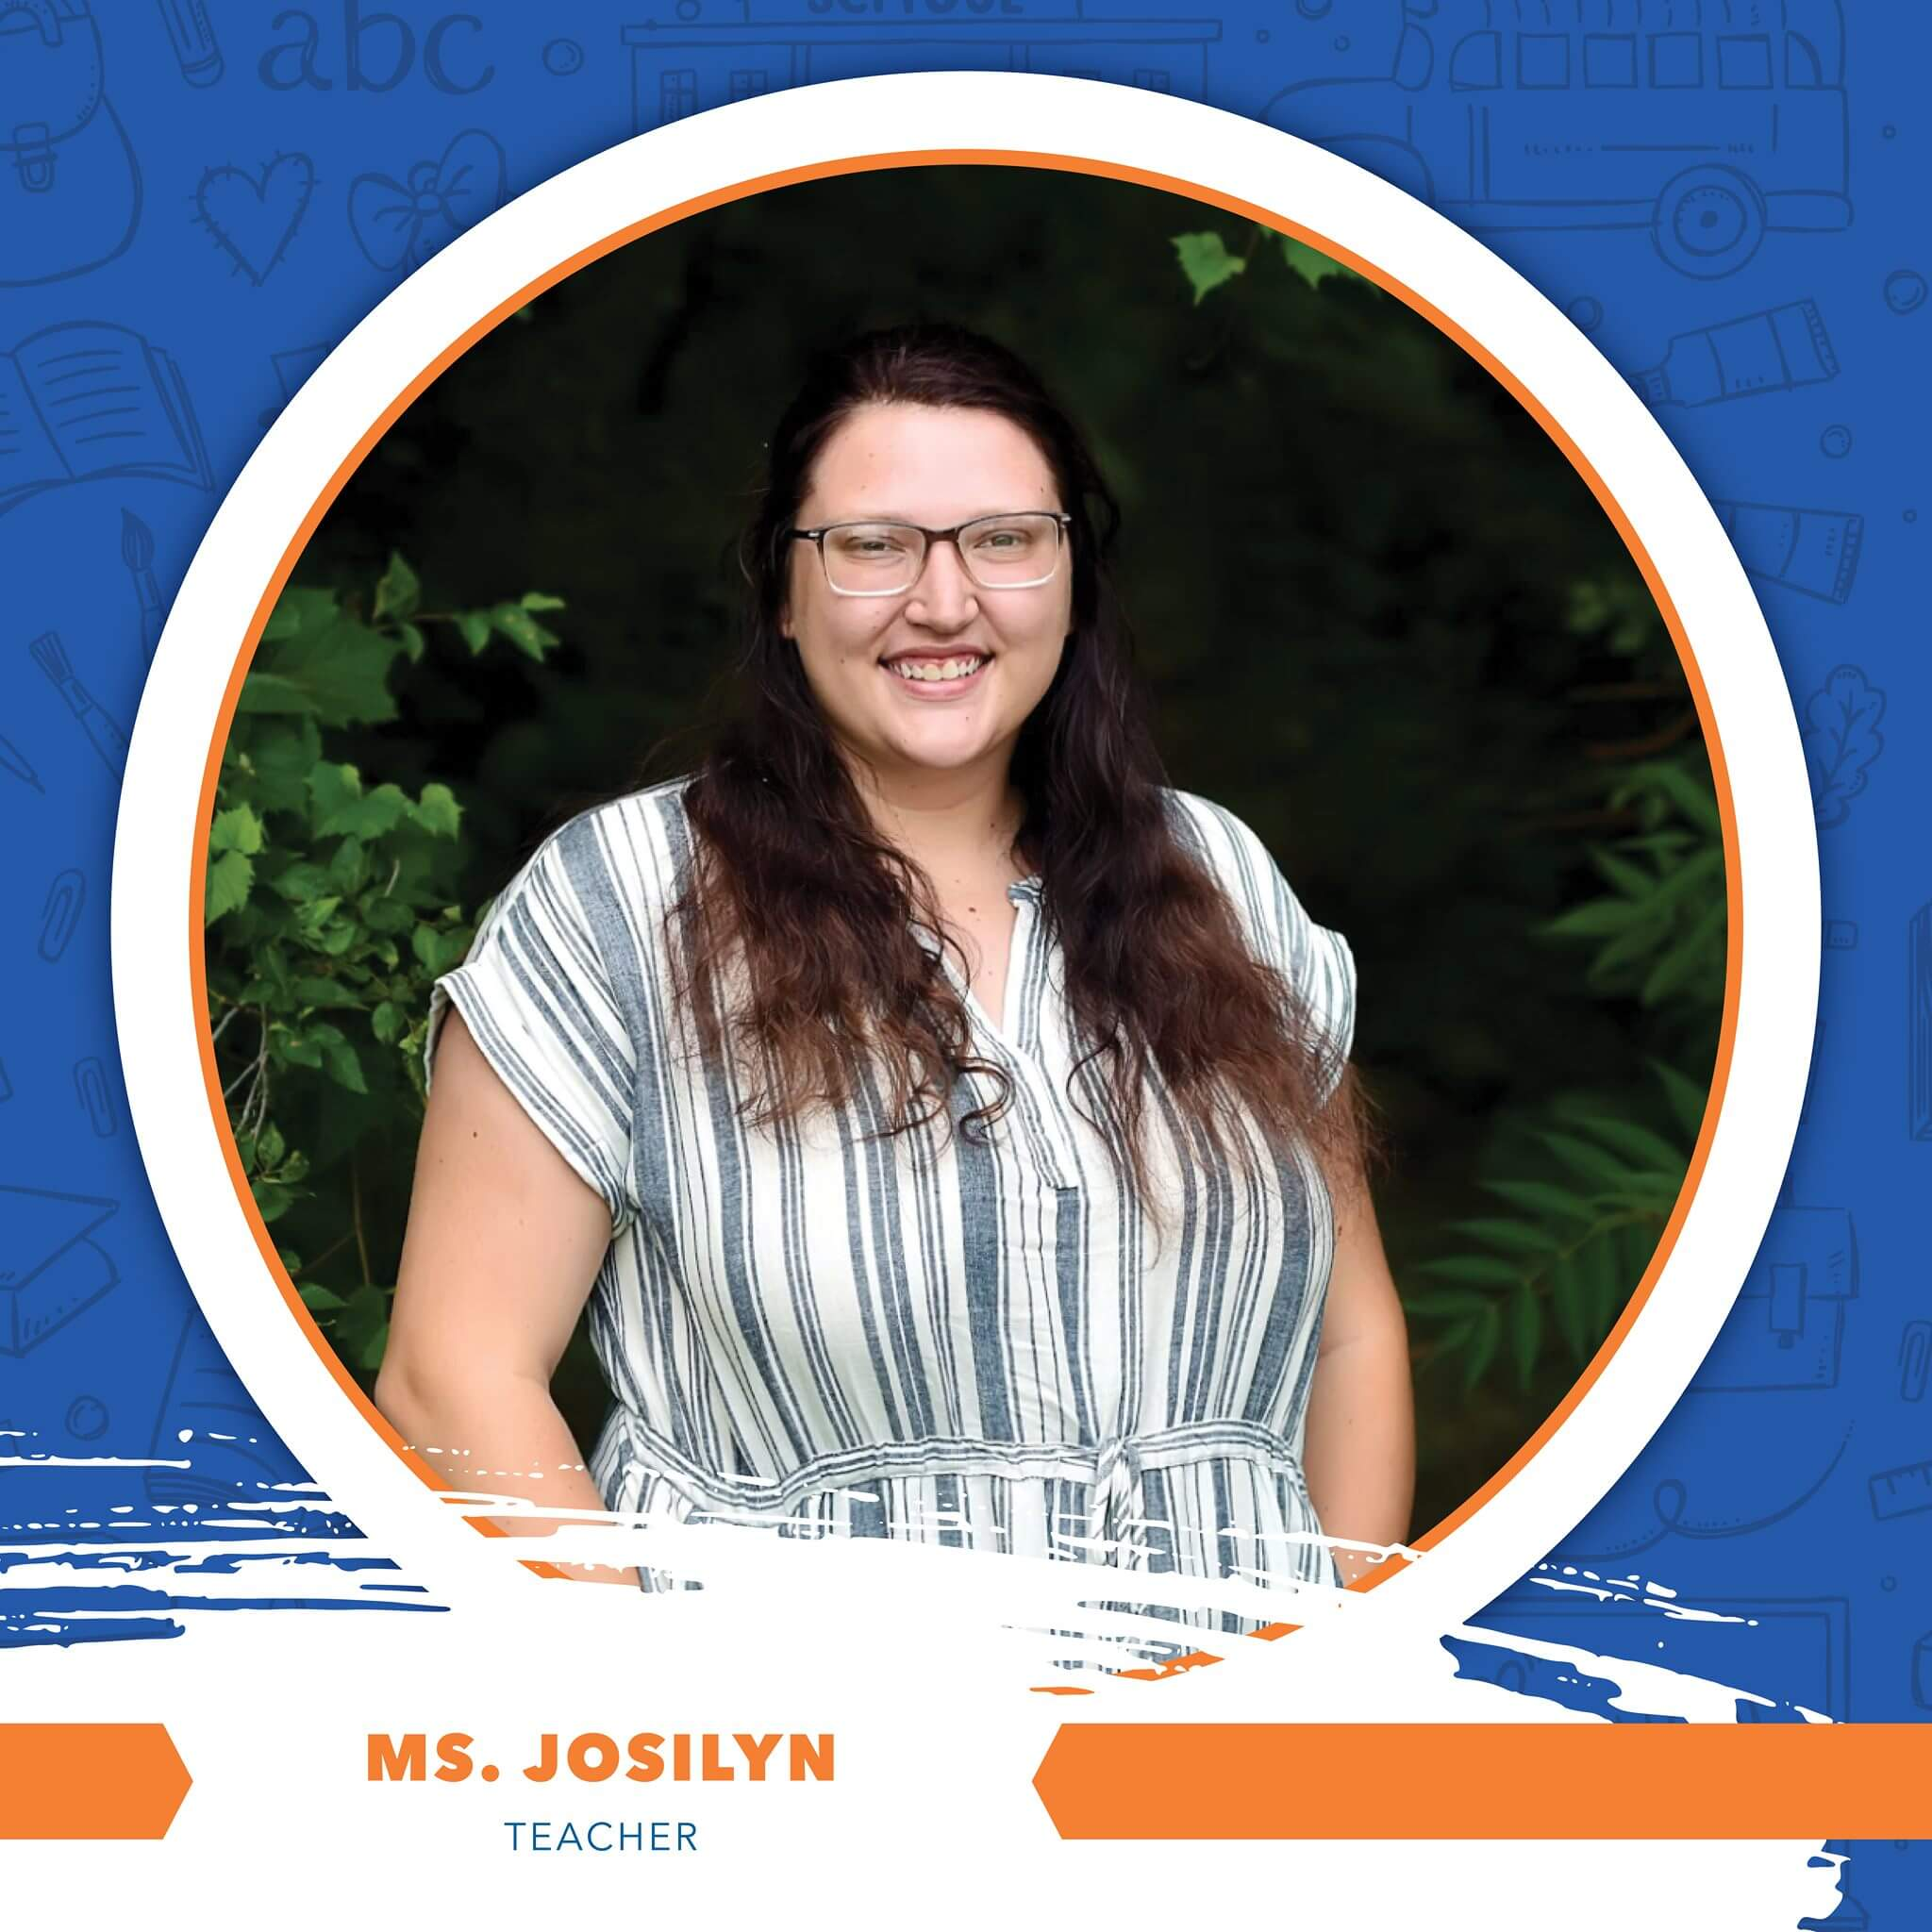 Ms. Josilyn - Teacher